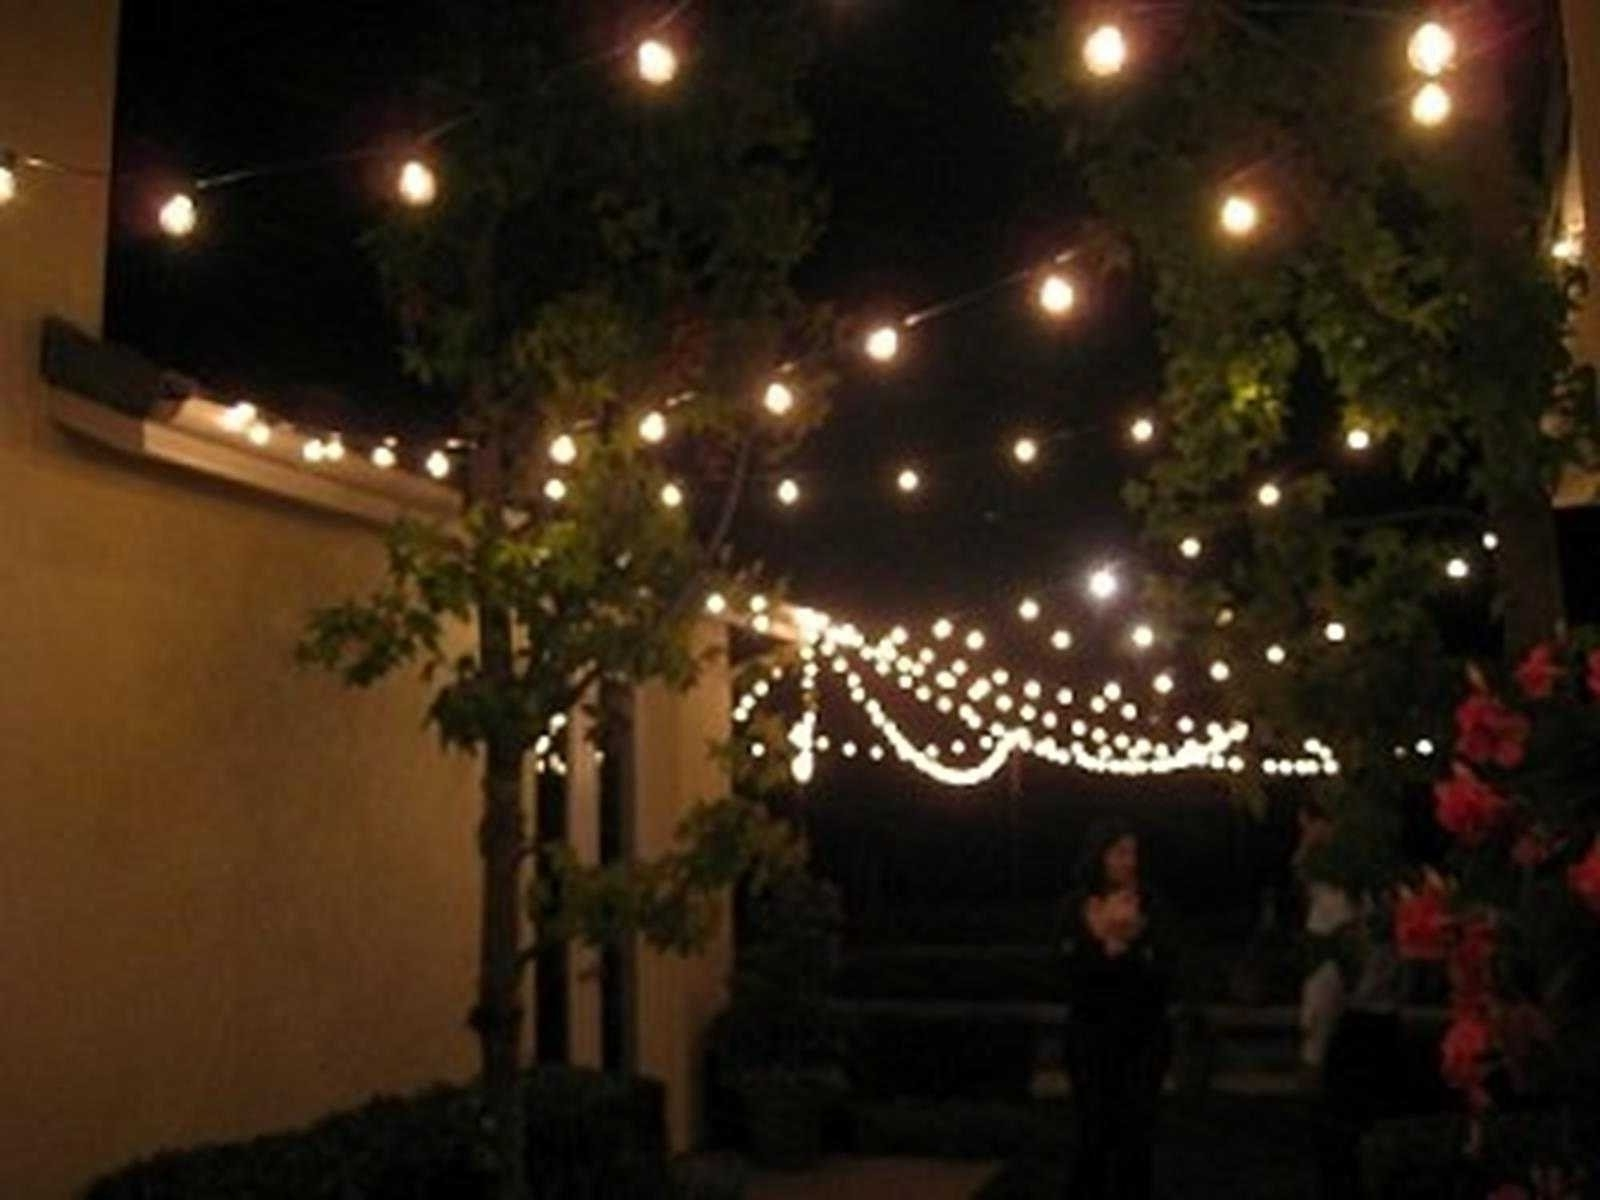 Best Outdoor String Lights Patio Solar Home Depot Umbrella Target Inside Famous Hanging Outdoor String Lights At Target (View 4 of 20)